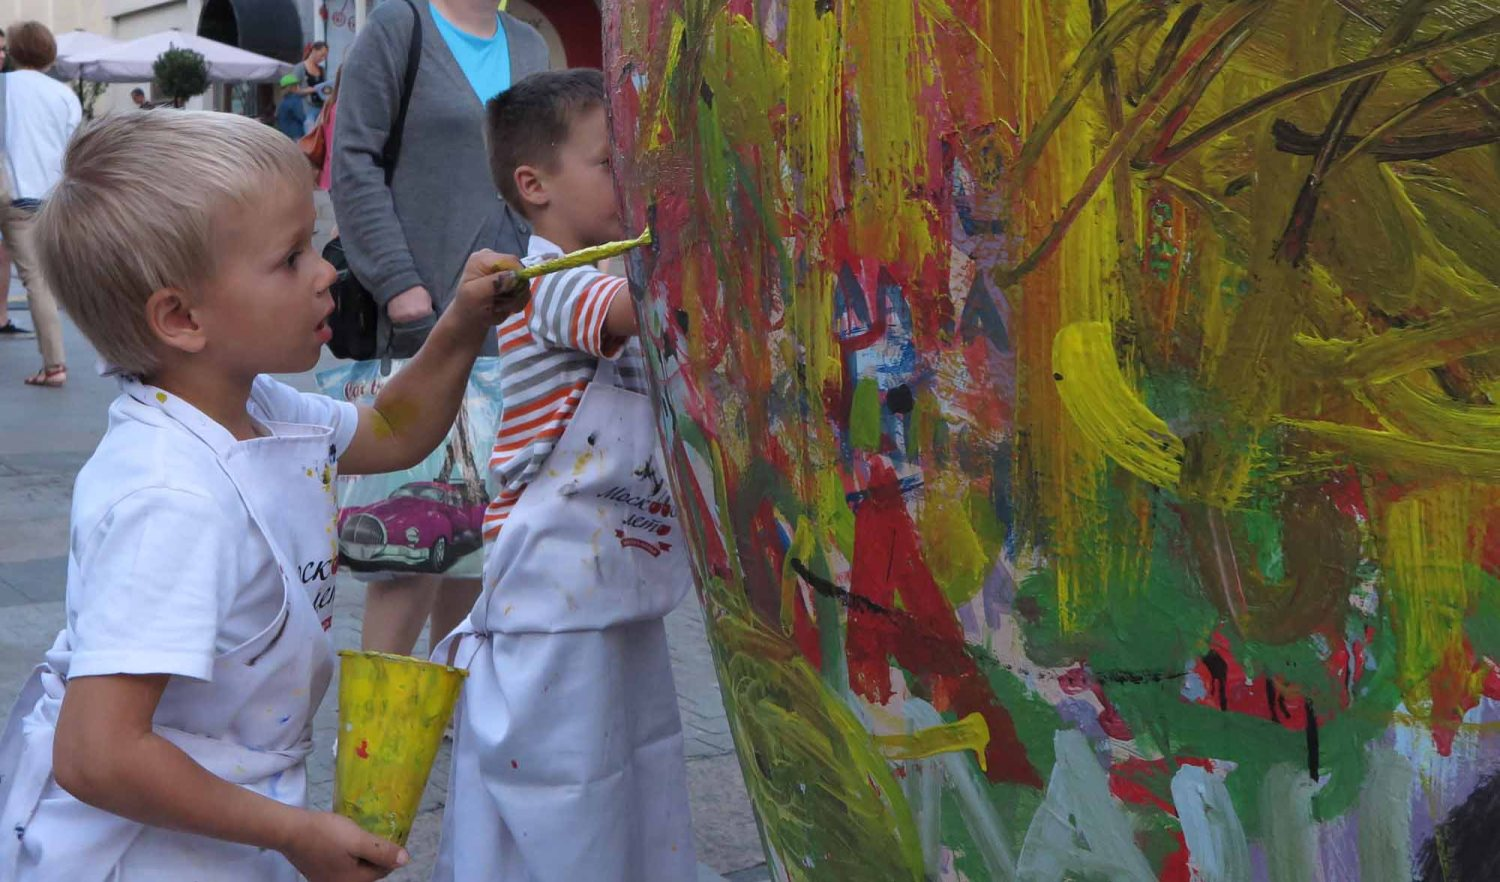 Russia-Moscow-Street-Scenes-Kids-Painting